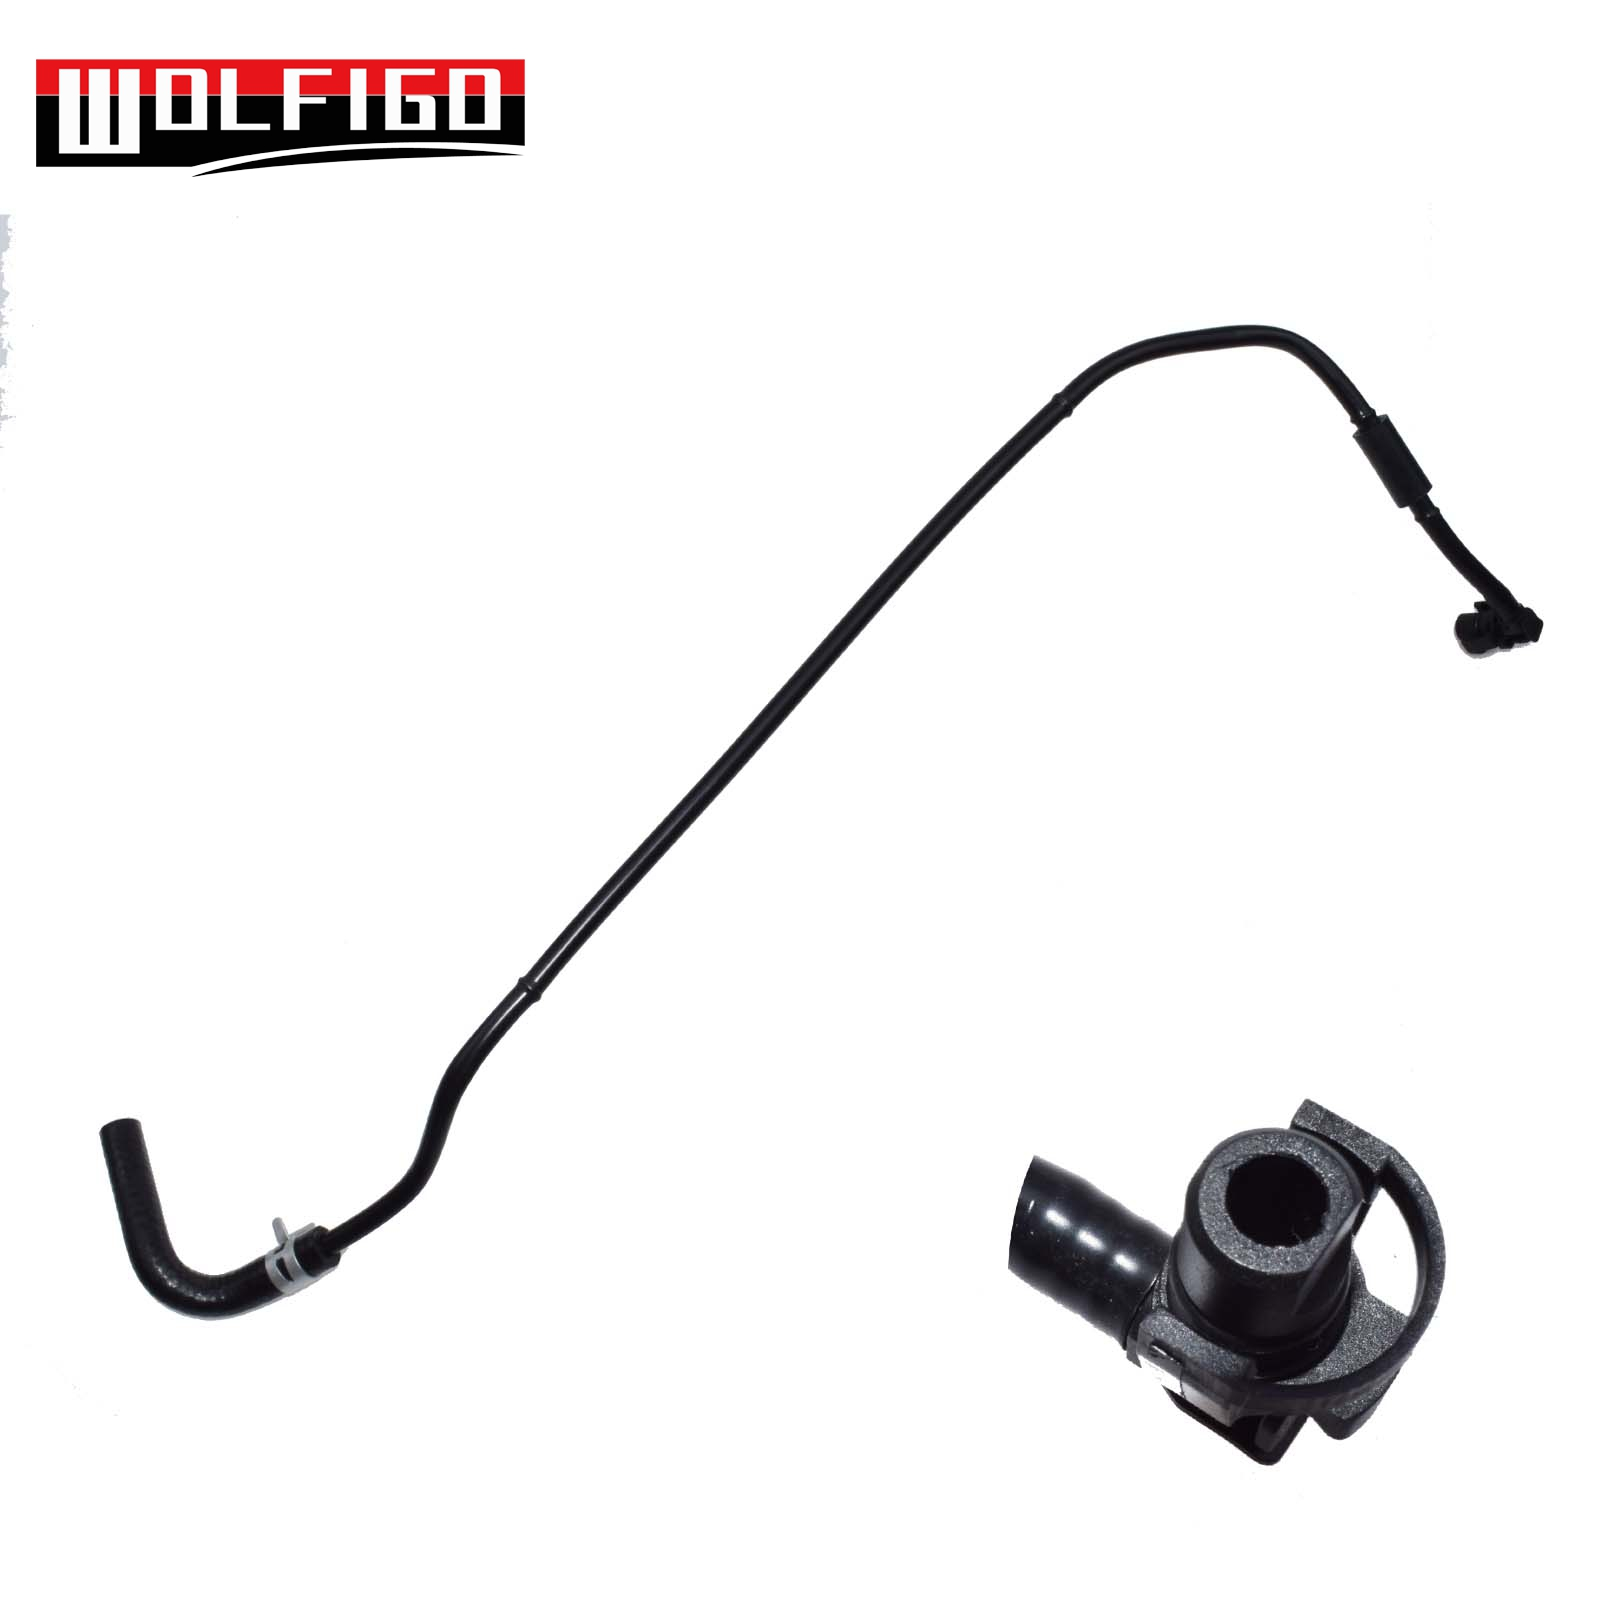 25192904 Engine Water Pump Inlet Tube for Opel Astra Zafira Vectra